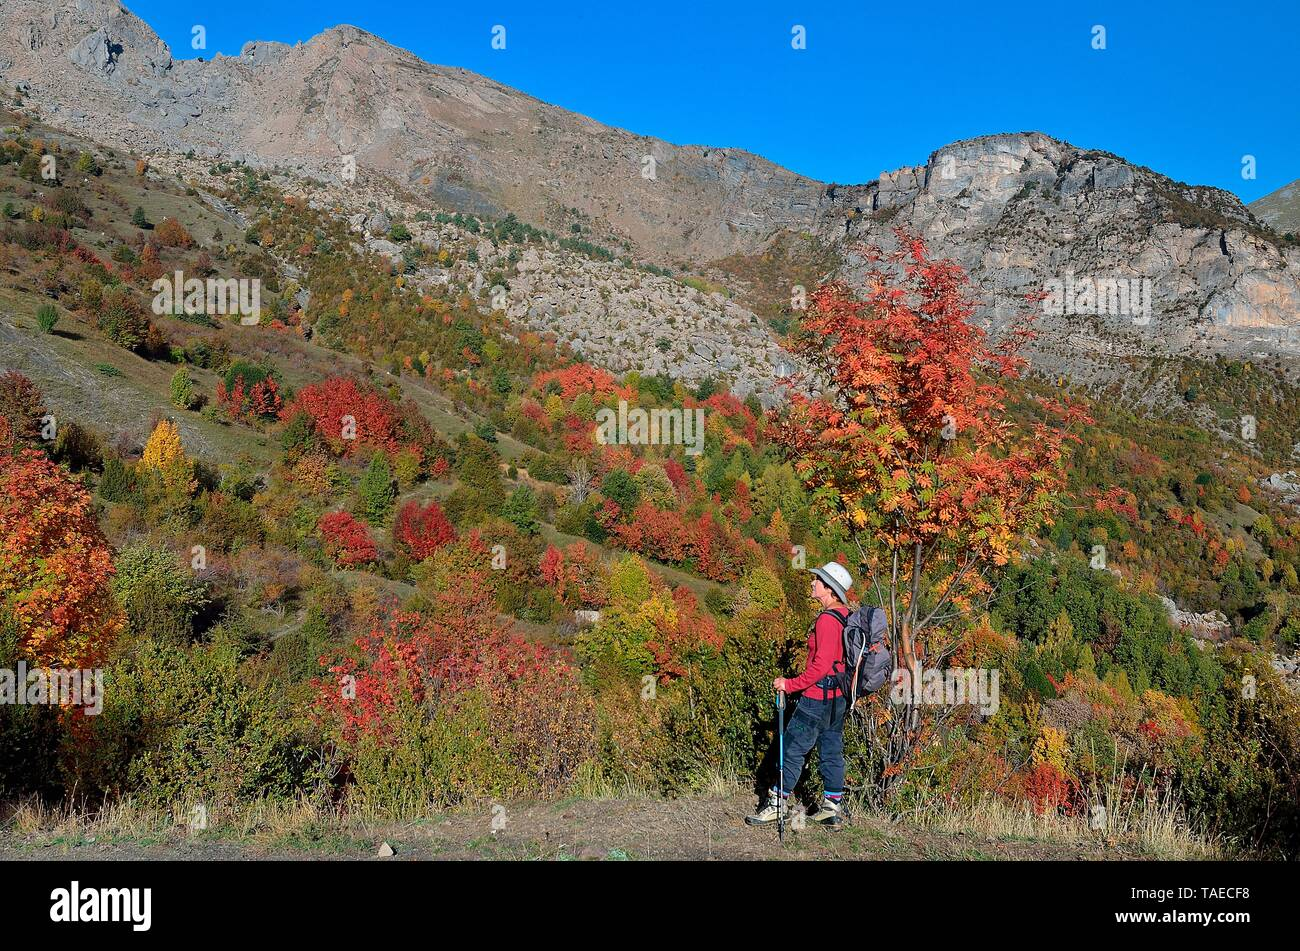 Colors of autumn in the Tena Valley, Huesca, Pyrenees, Aragon, Spain Stock Photo